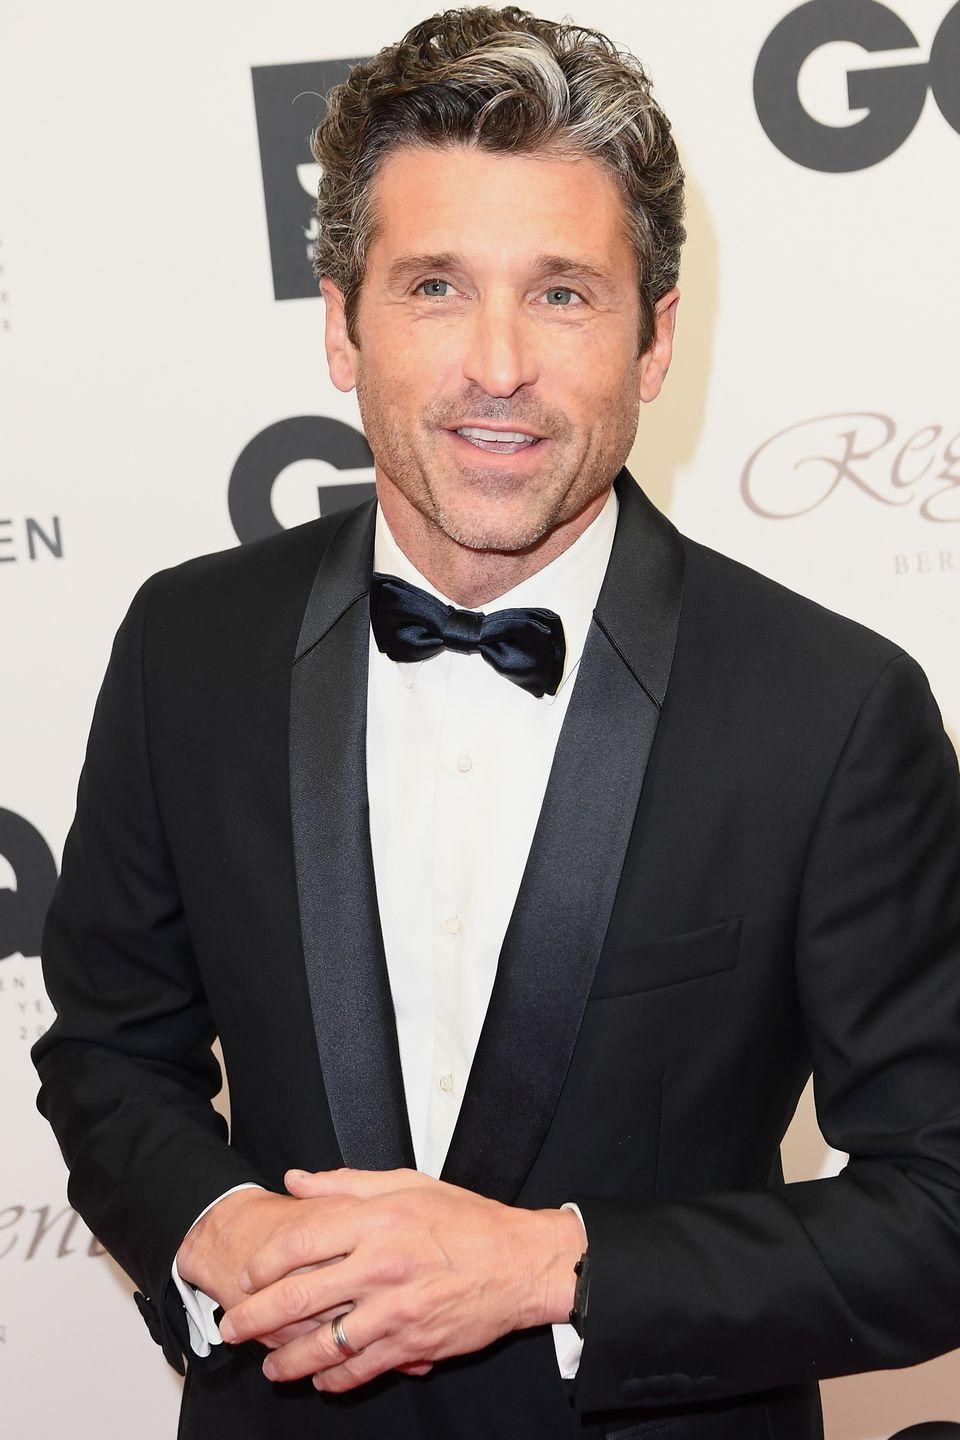 """<p>He famously played a doctor on TV, but Dempsey <a href=""""https://www.biography.com/people/patrick-dempsey-201303"""" rel=""""nofollow noopener"""" target=""""_blank"""" data-ylk=""""slk:dropped out"""" class=""""link rapid-noclick-resp"""">dropped out</a> of school at 17.</p>"""